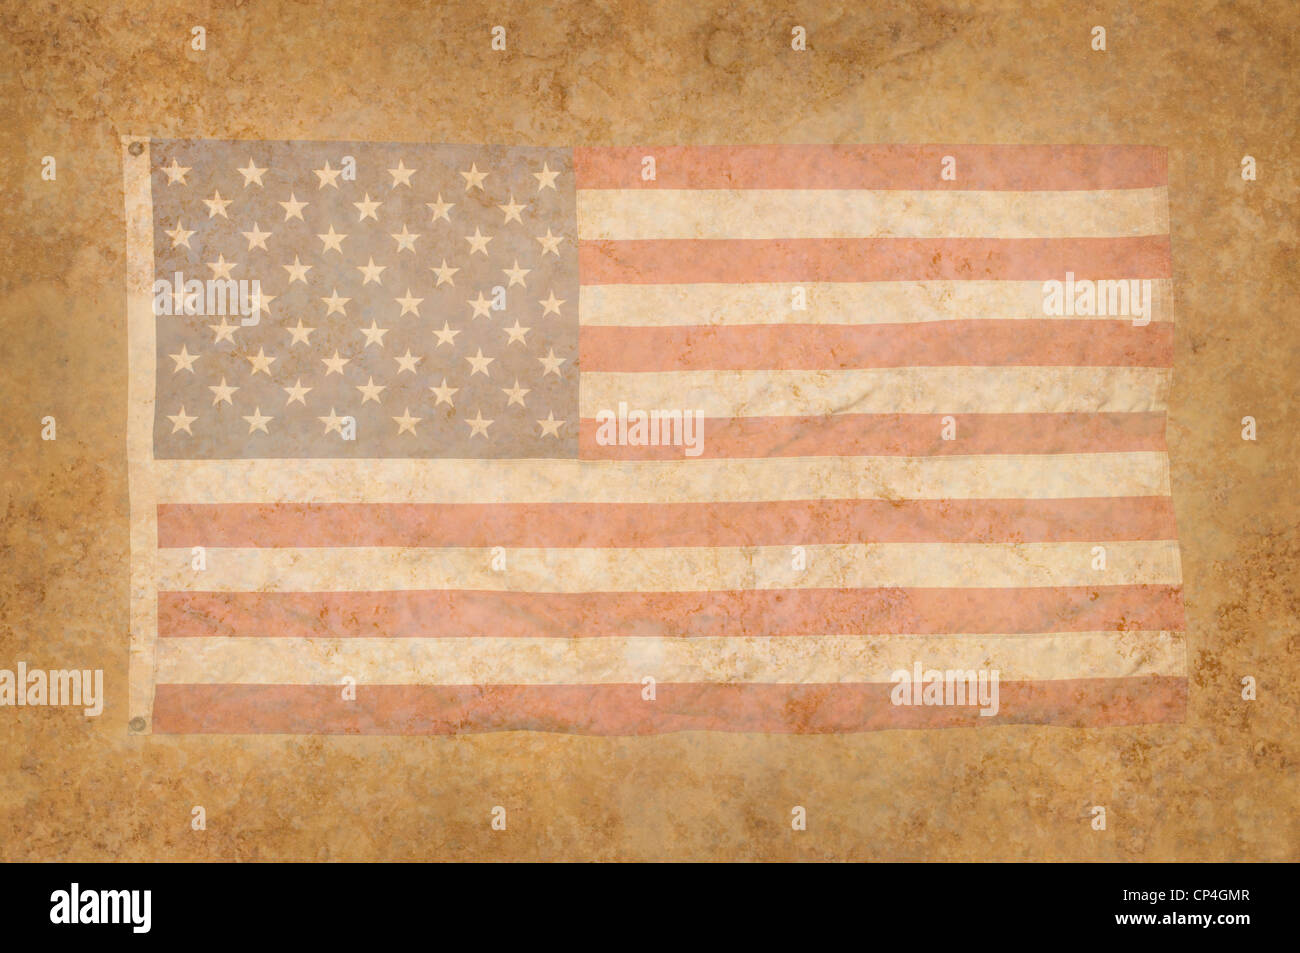 Grungy American Flag within a mottled background texture - Stock Image